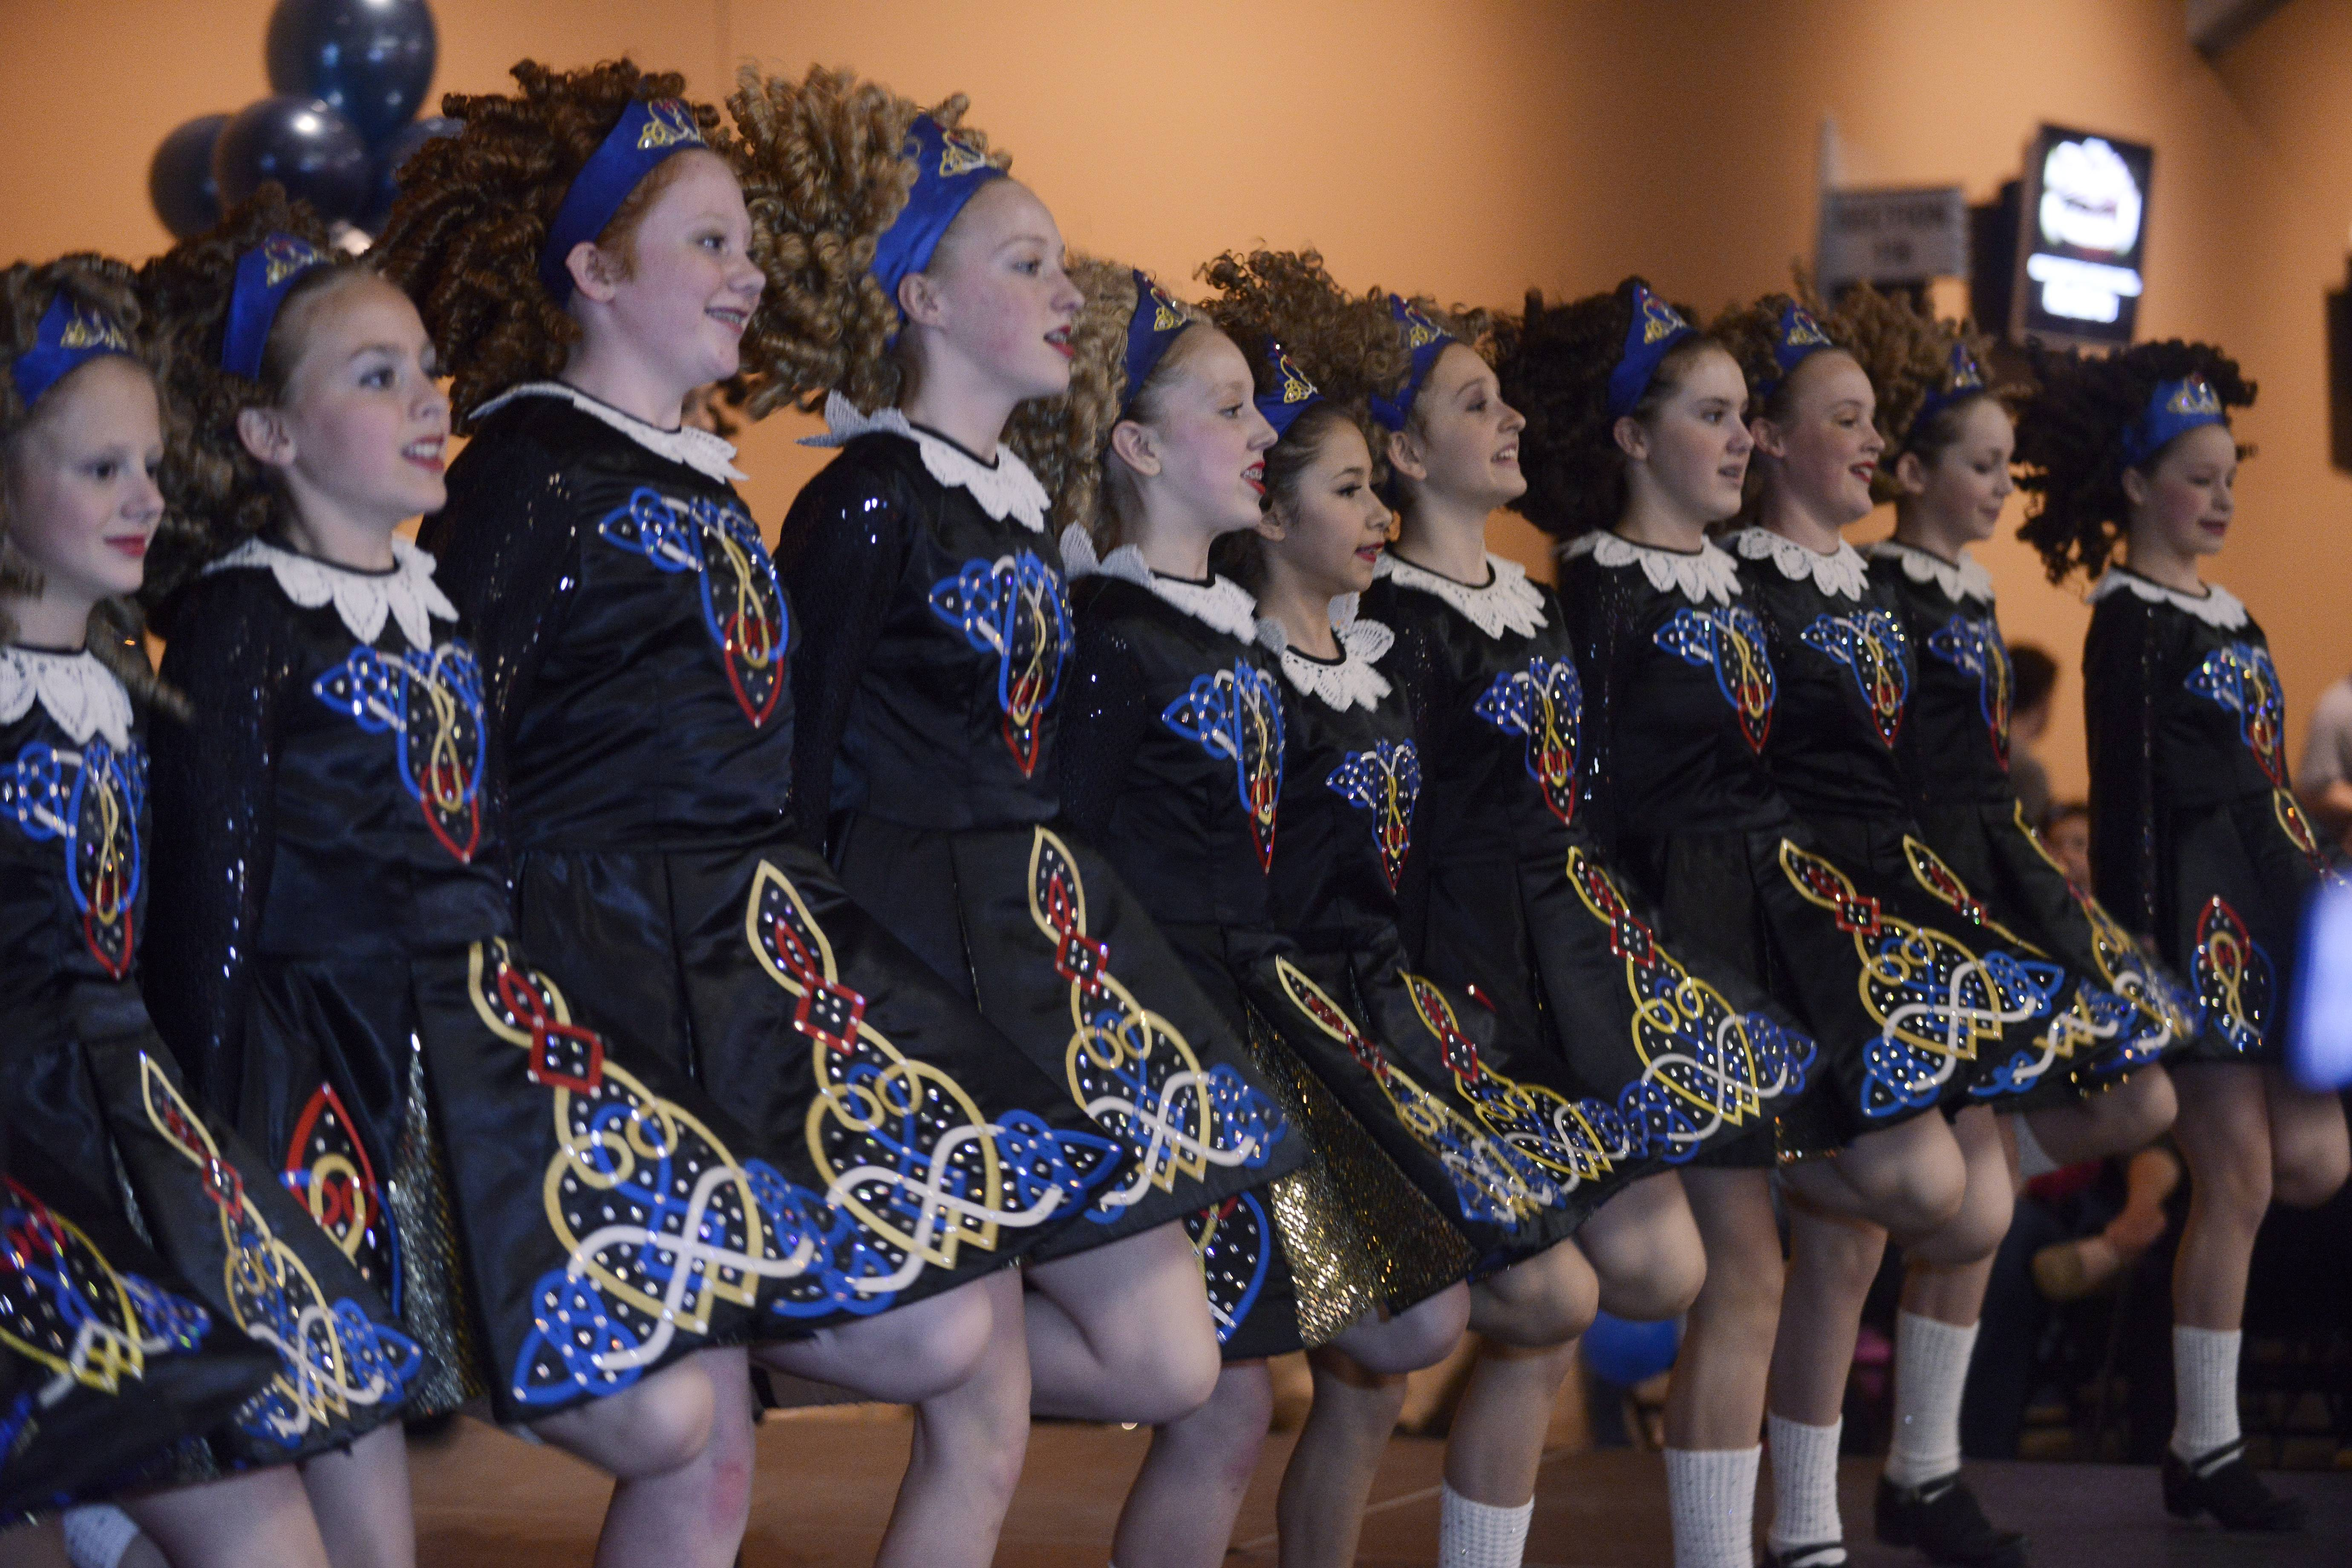 The Rebecca McCarthy Irish Dancers, based in Algonquin, performing at a previous edition of the Village of Hoffman Estates' Celtic Fest at the Sears Centre Arena in Hoffman Estates.